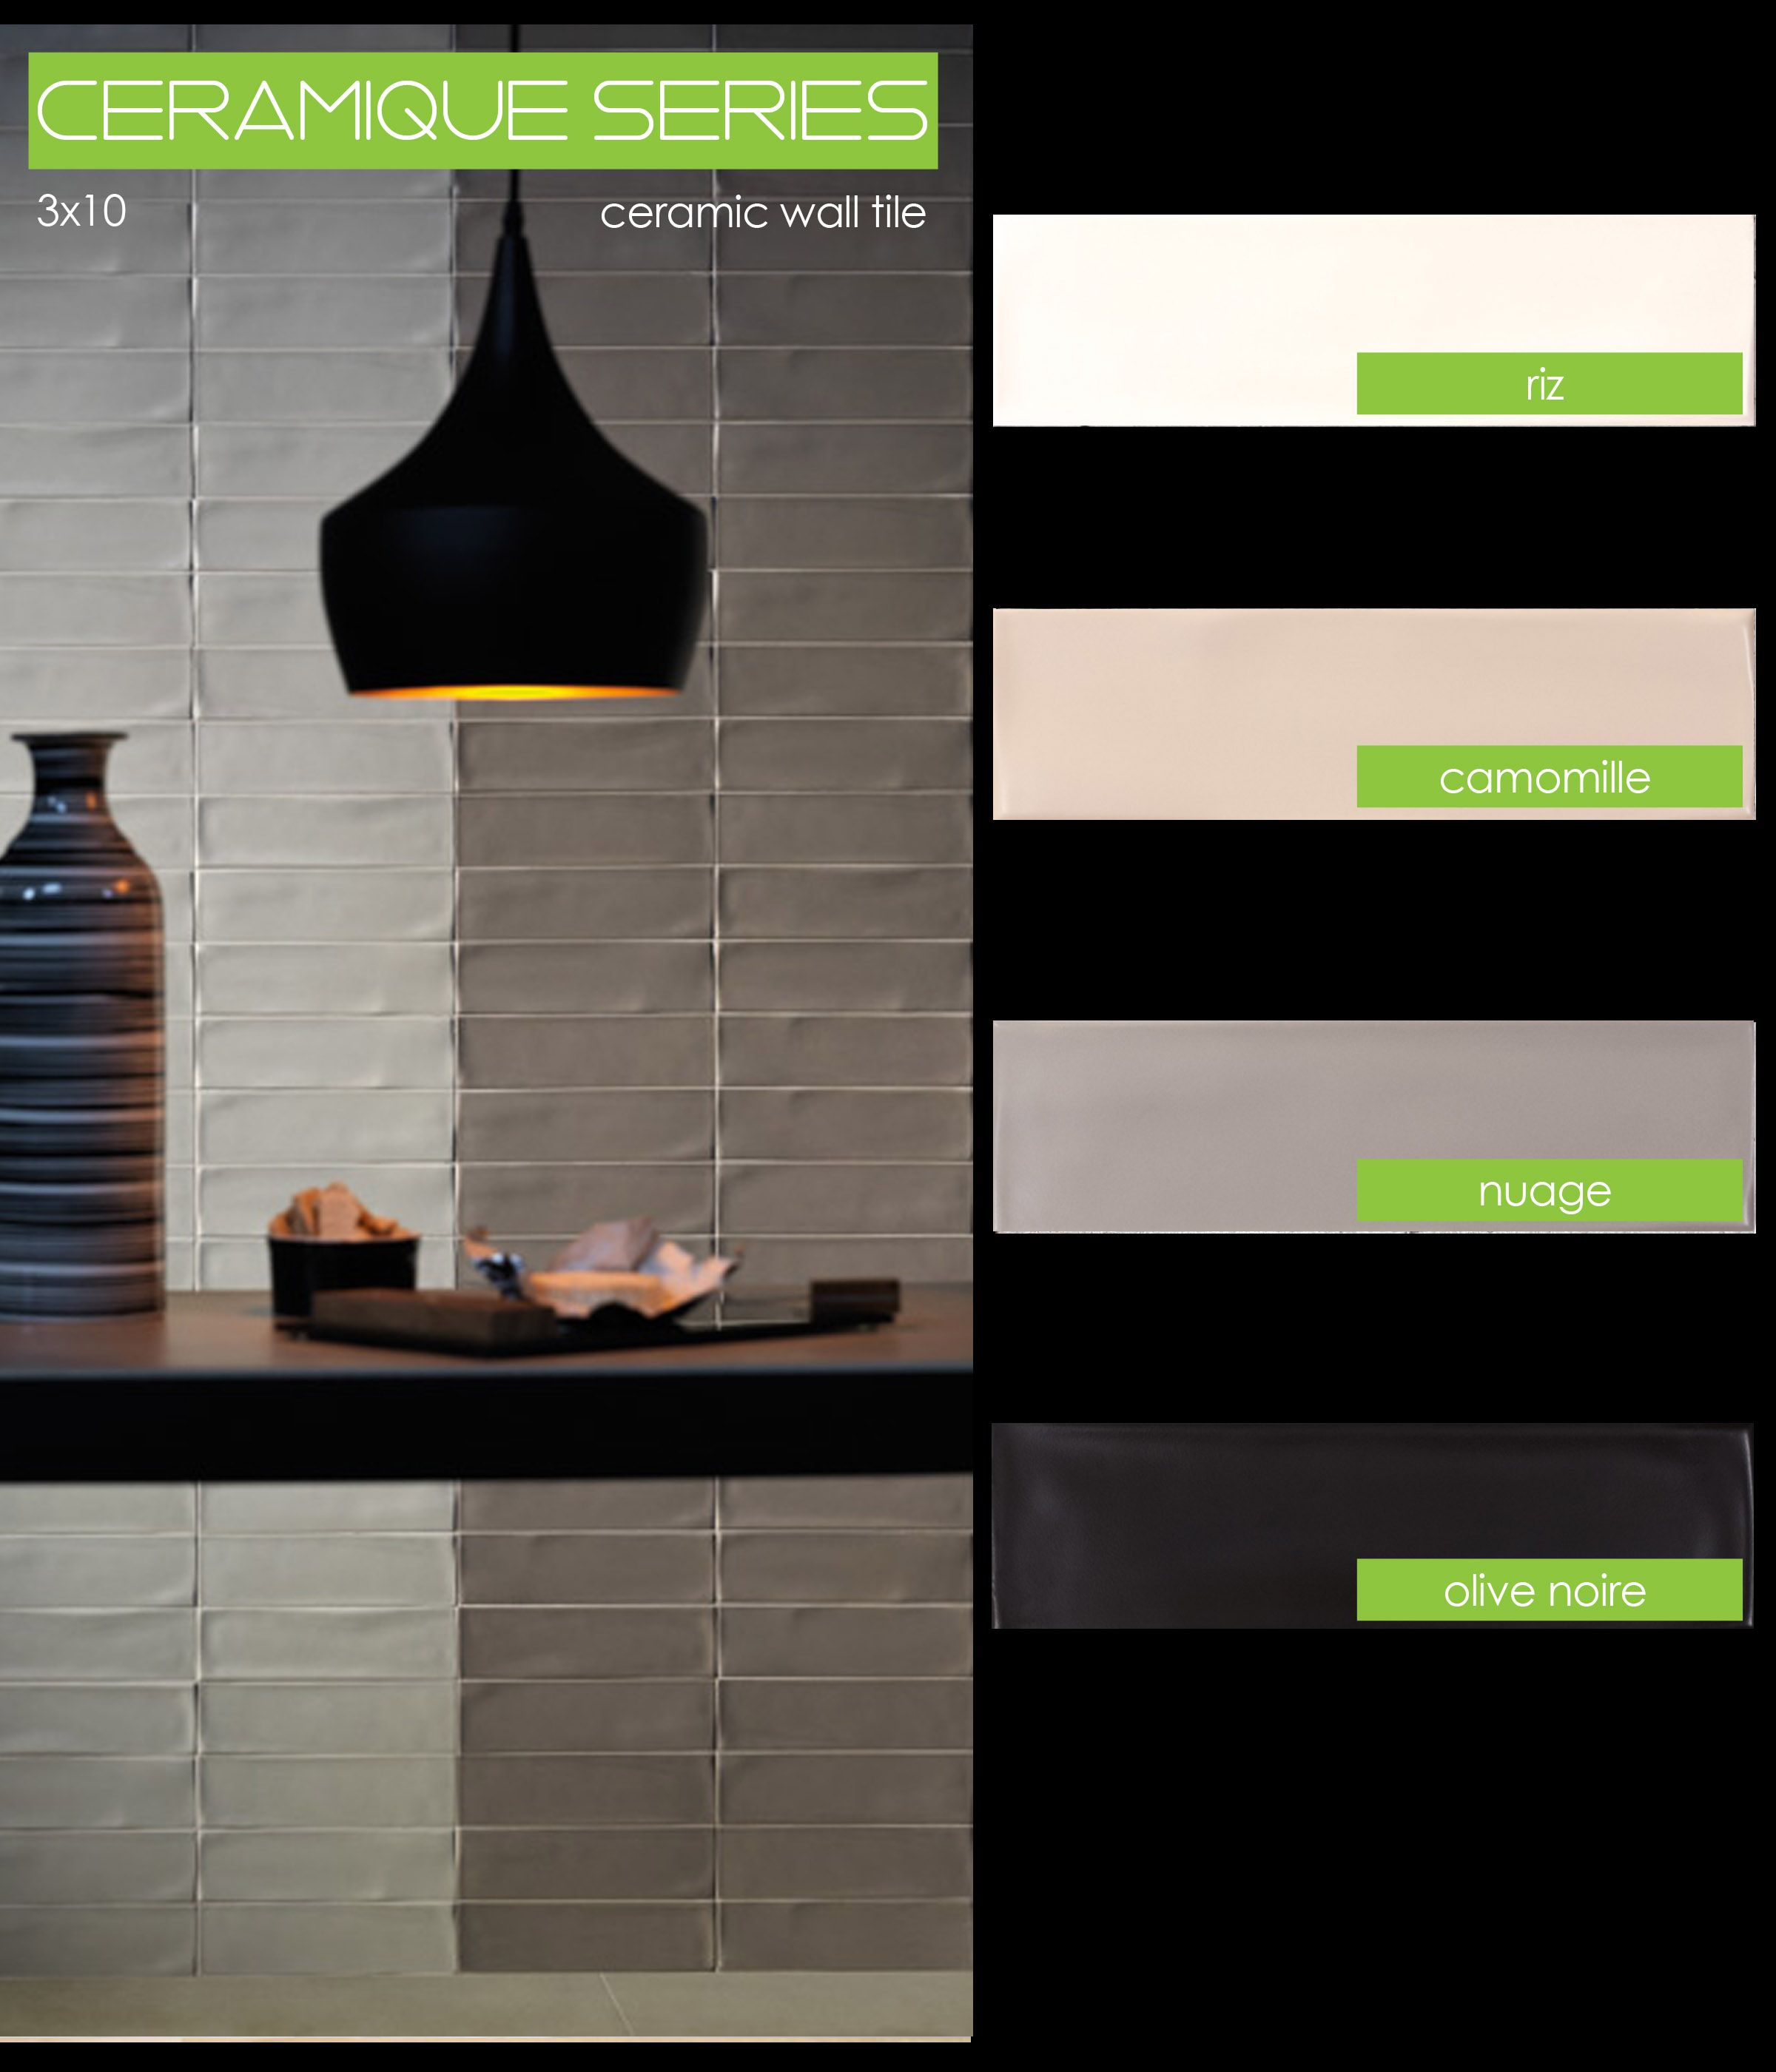 Ceramique Series Ceramic Wall Tile 3x10 Tierra Sol Hand Molded Wall